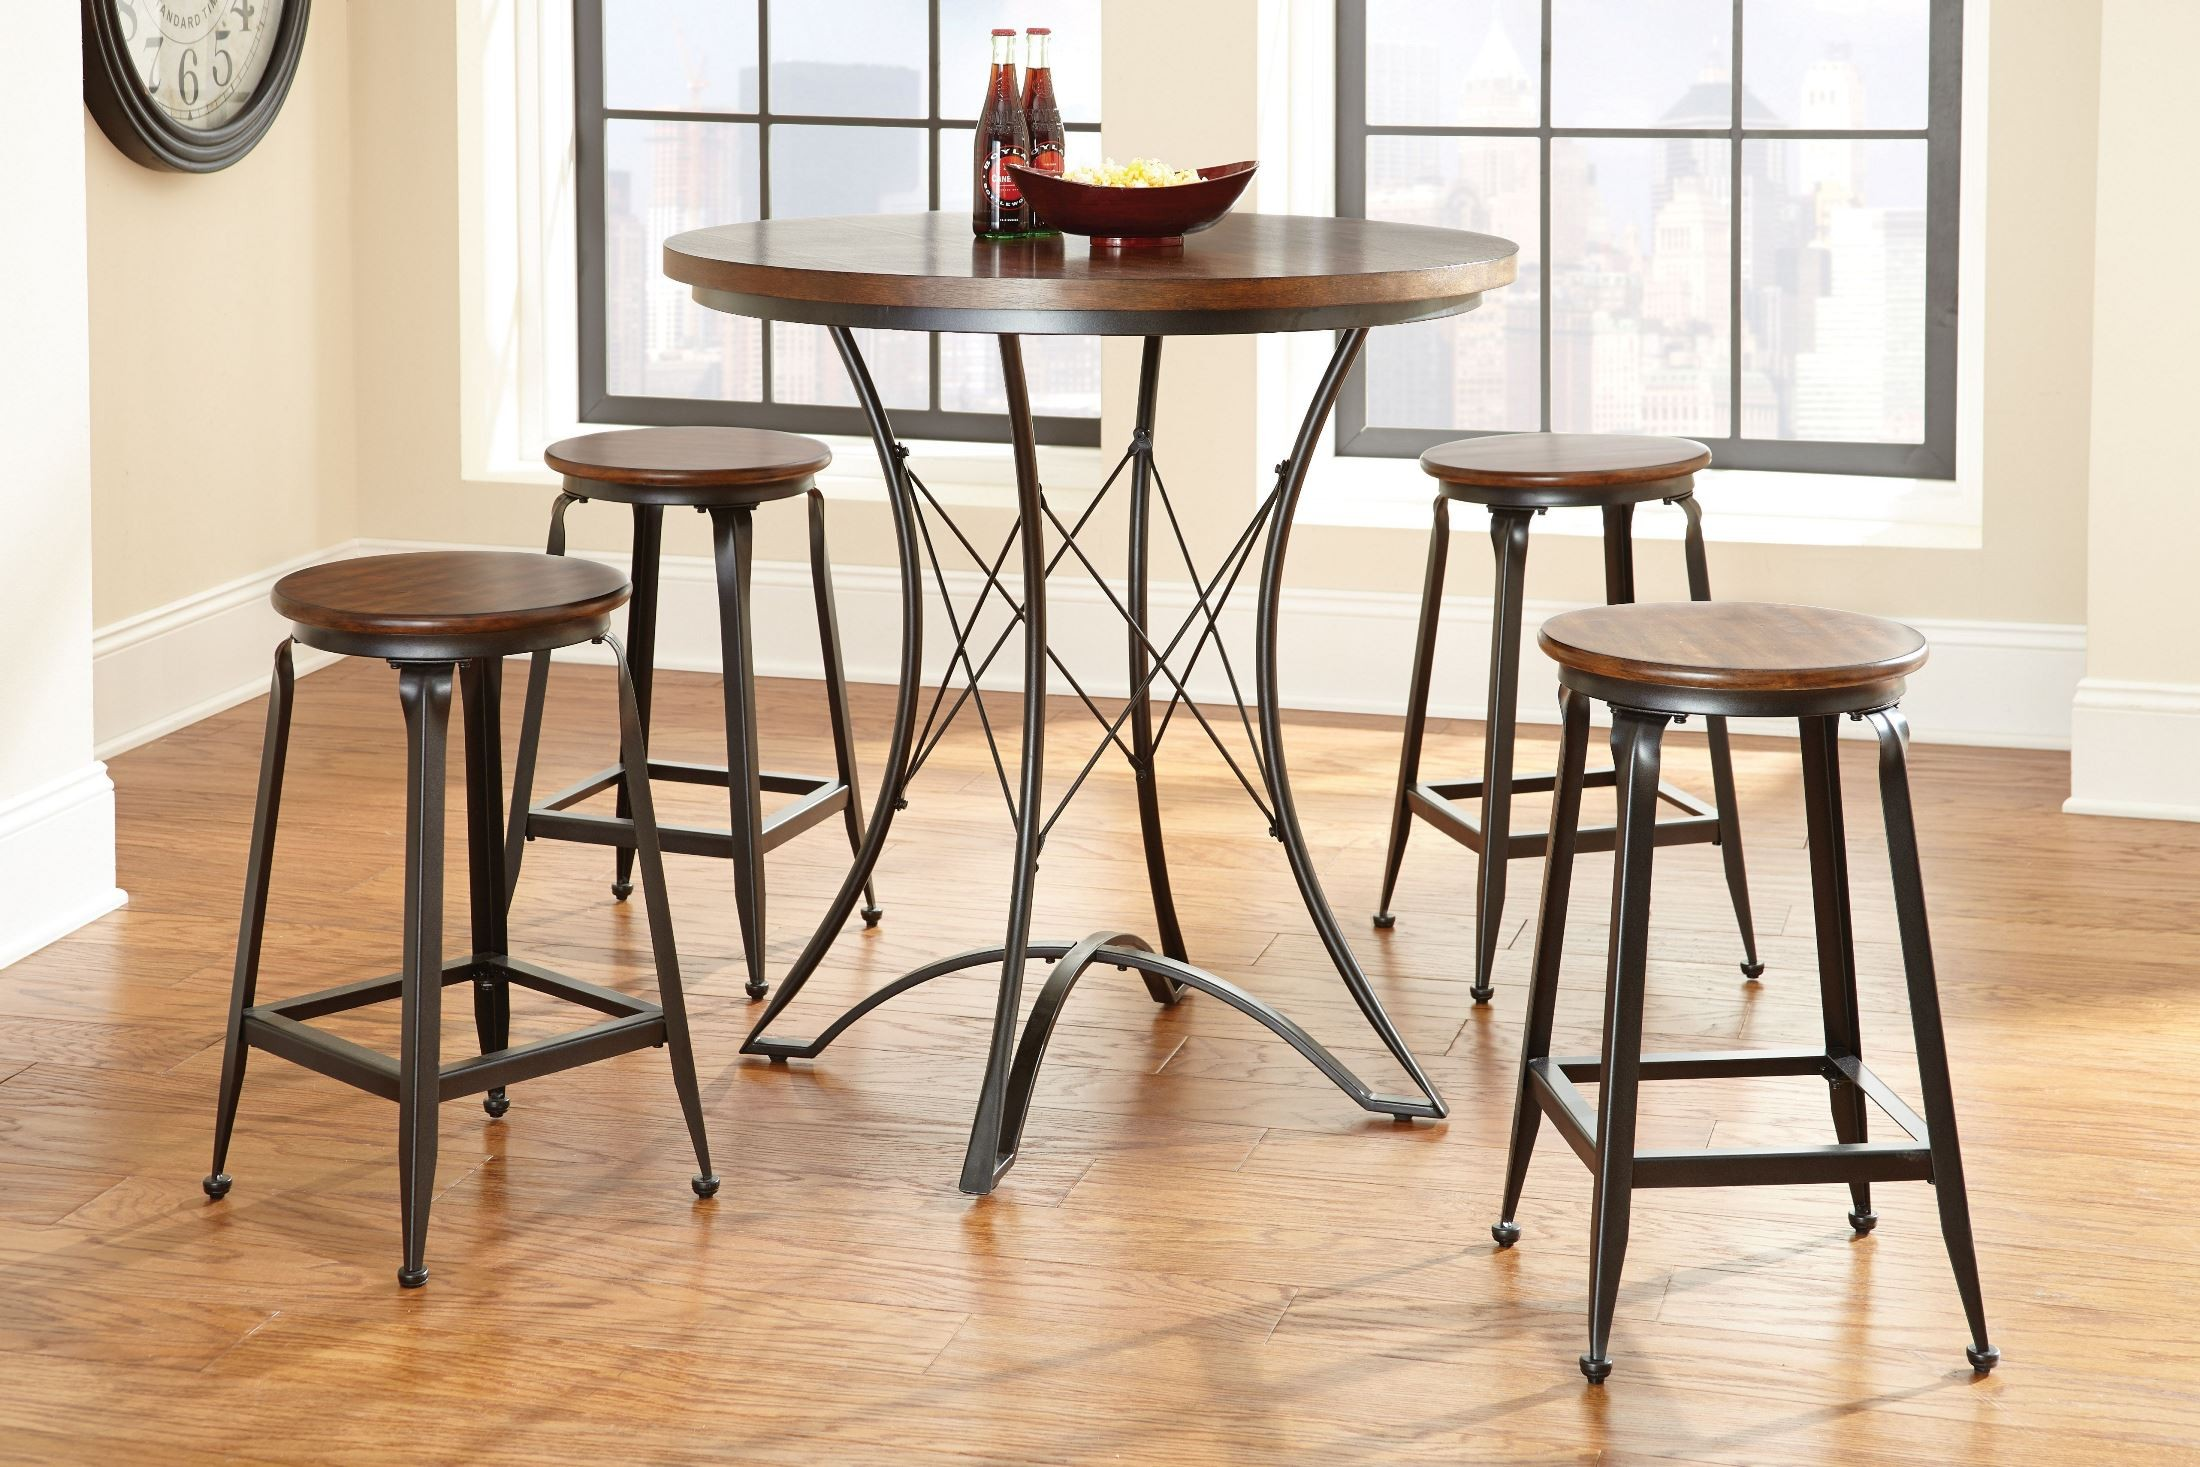 Counter Height Round Dining Set : Adele Round Counter Height Dining Room Set from Steve Silver (AE360PT ...